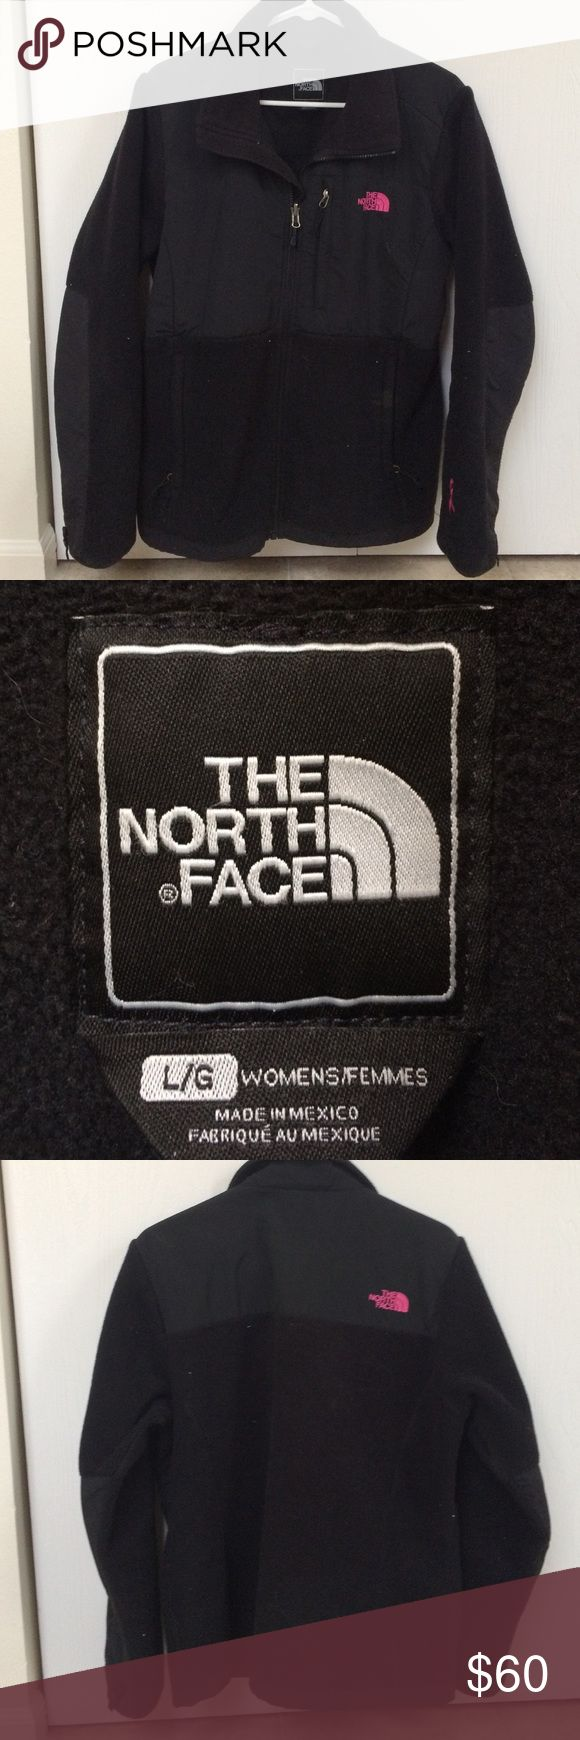 Women's North Face Denali She seems large in good used condition. Perfect for fall and winter. Black with hot pink breast cancer awareness accent. The North Face Jackets & Coats